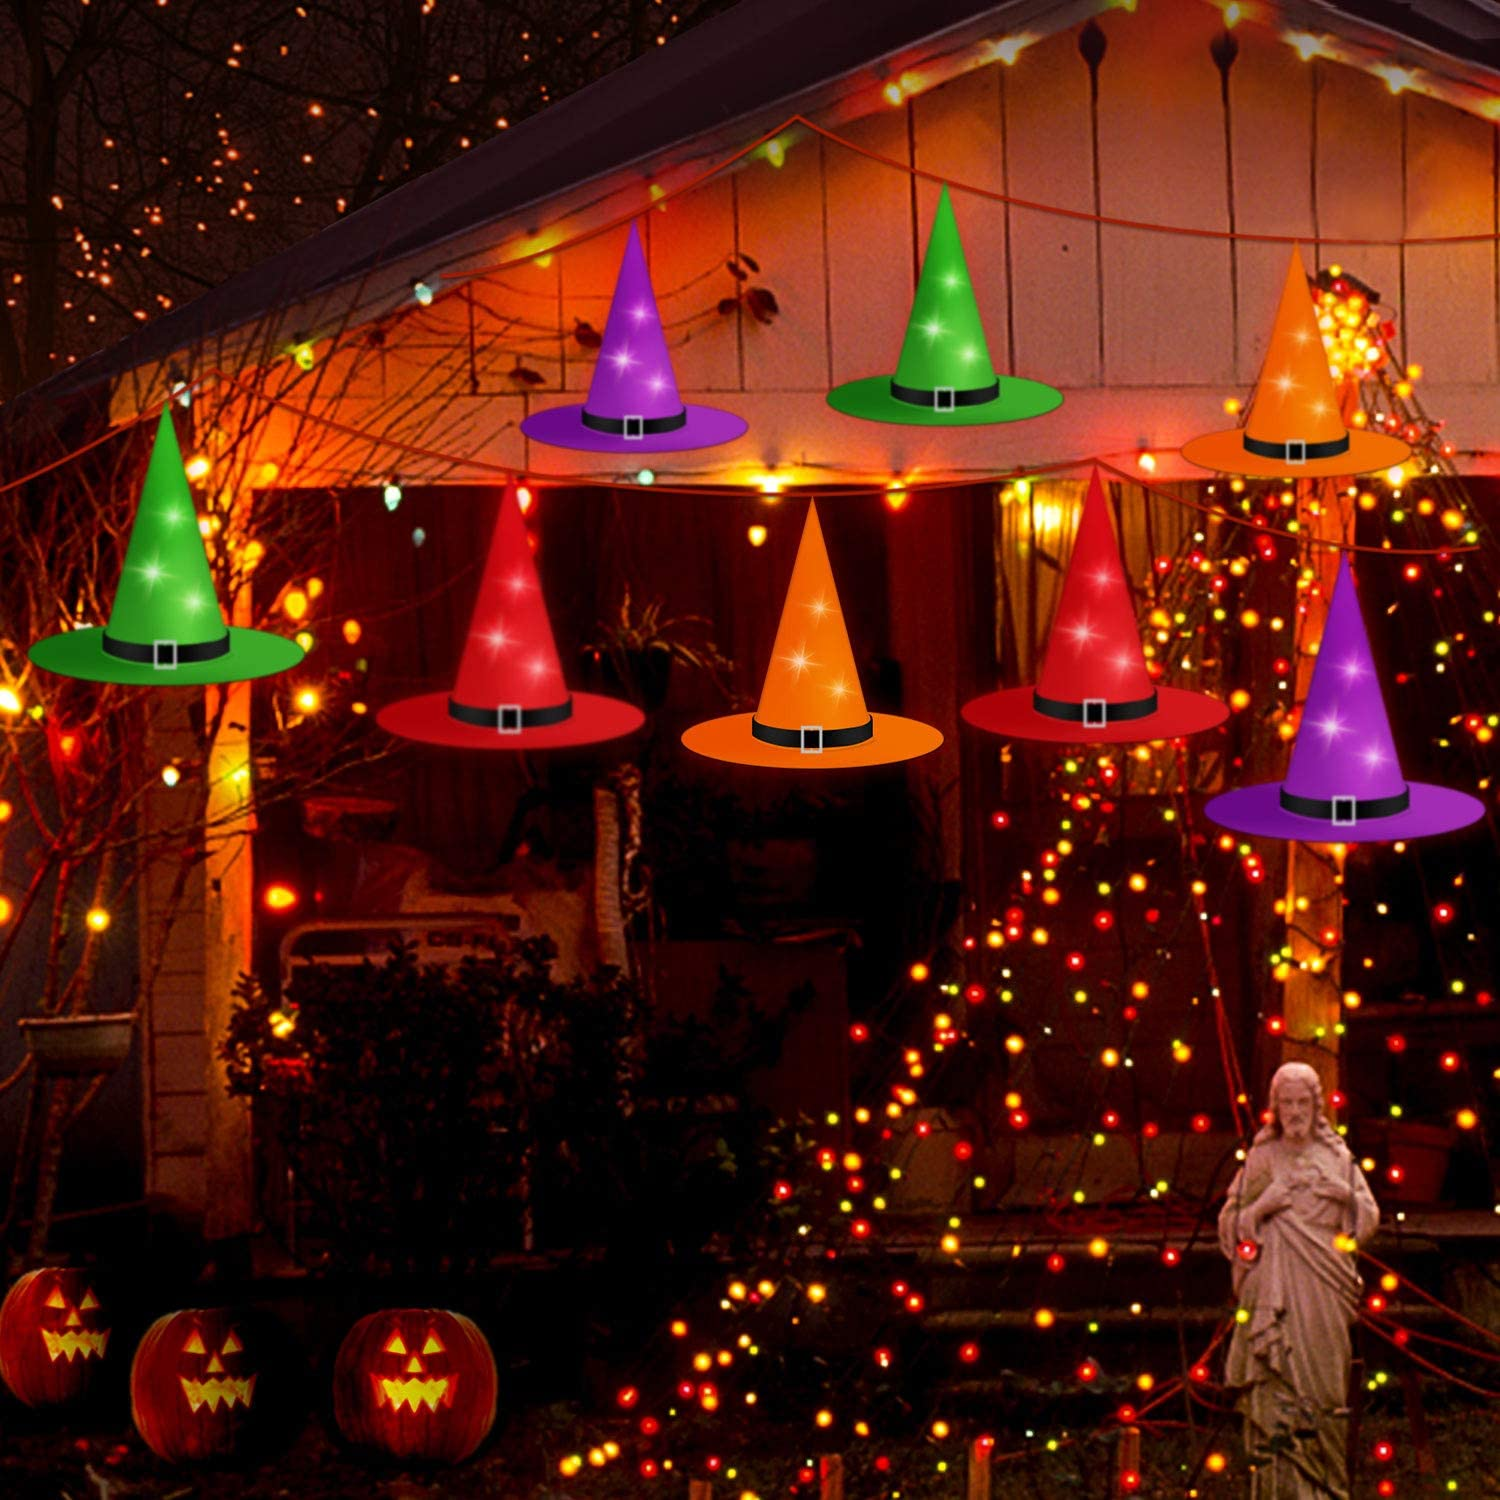 Halloween Decorations Outdoor Witch Hat, 8Pcs Hanging Lighted Glowing Witch Hat, Halloween LED String Light Decor with 8 Lighting Modes for Outdoor Yard Tree Lawn Garden Party